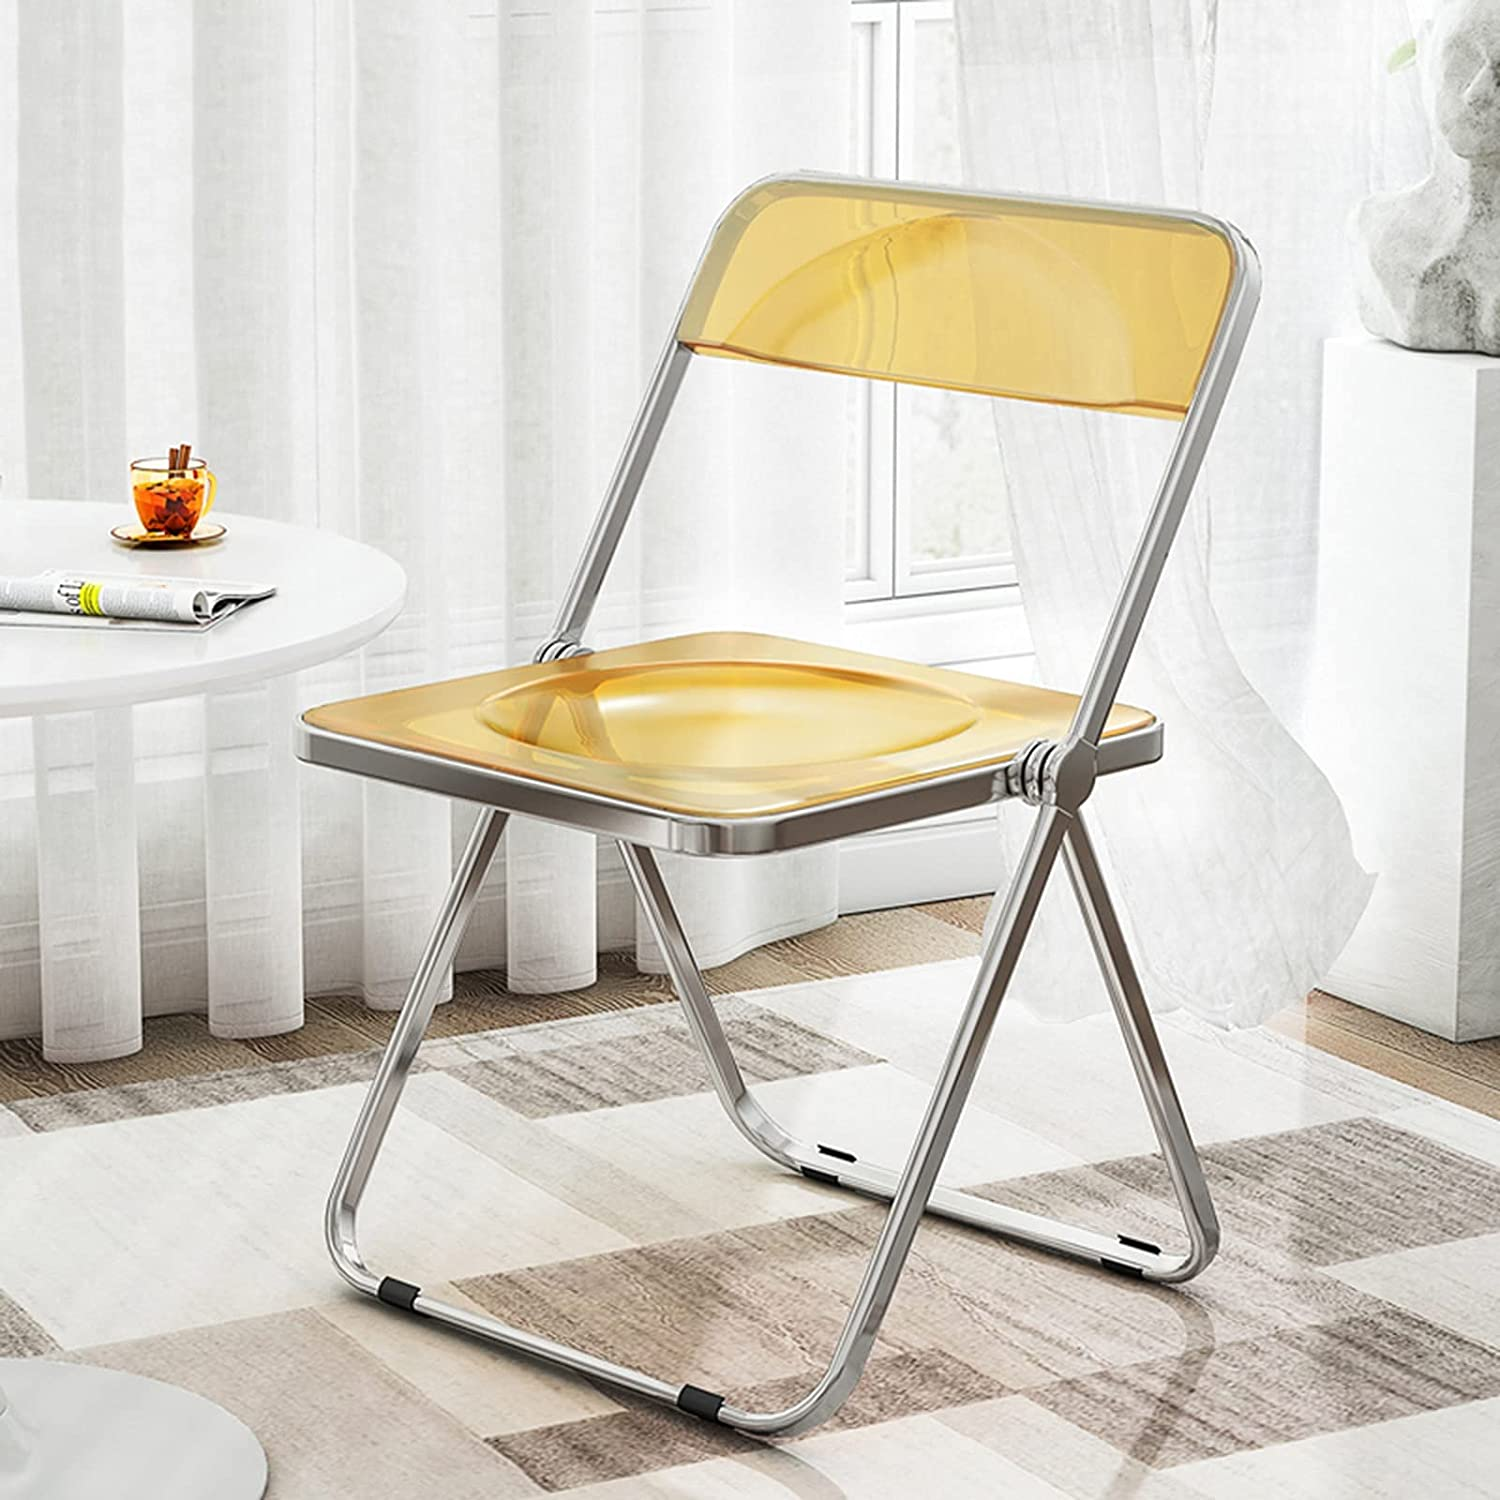 Folding Chairs Metal Transparent Mut Indianapolis Mall Chair Frame Dining OFFicial shop